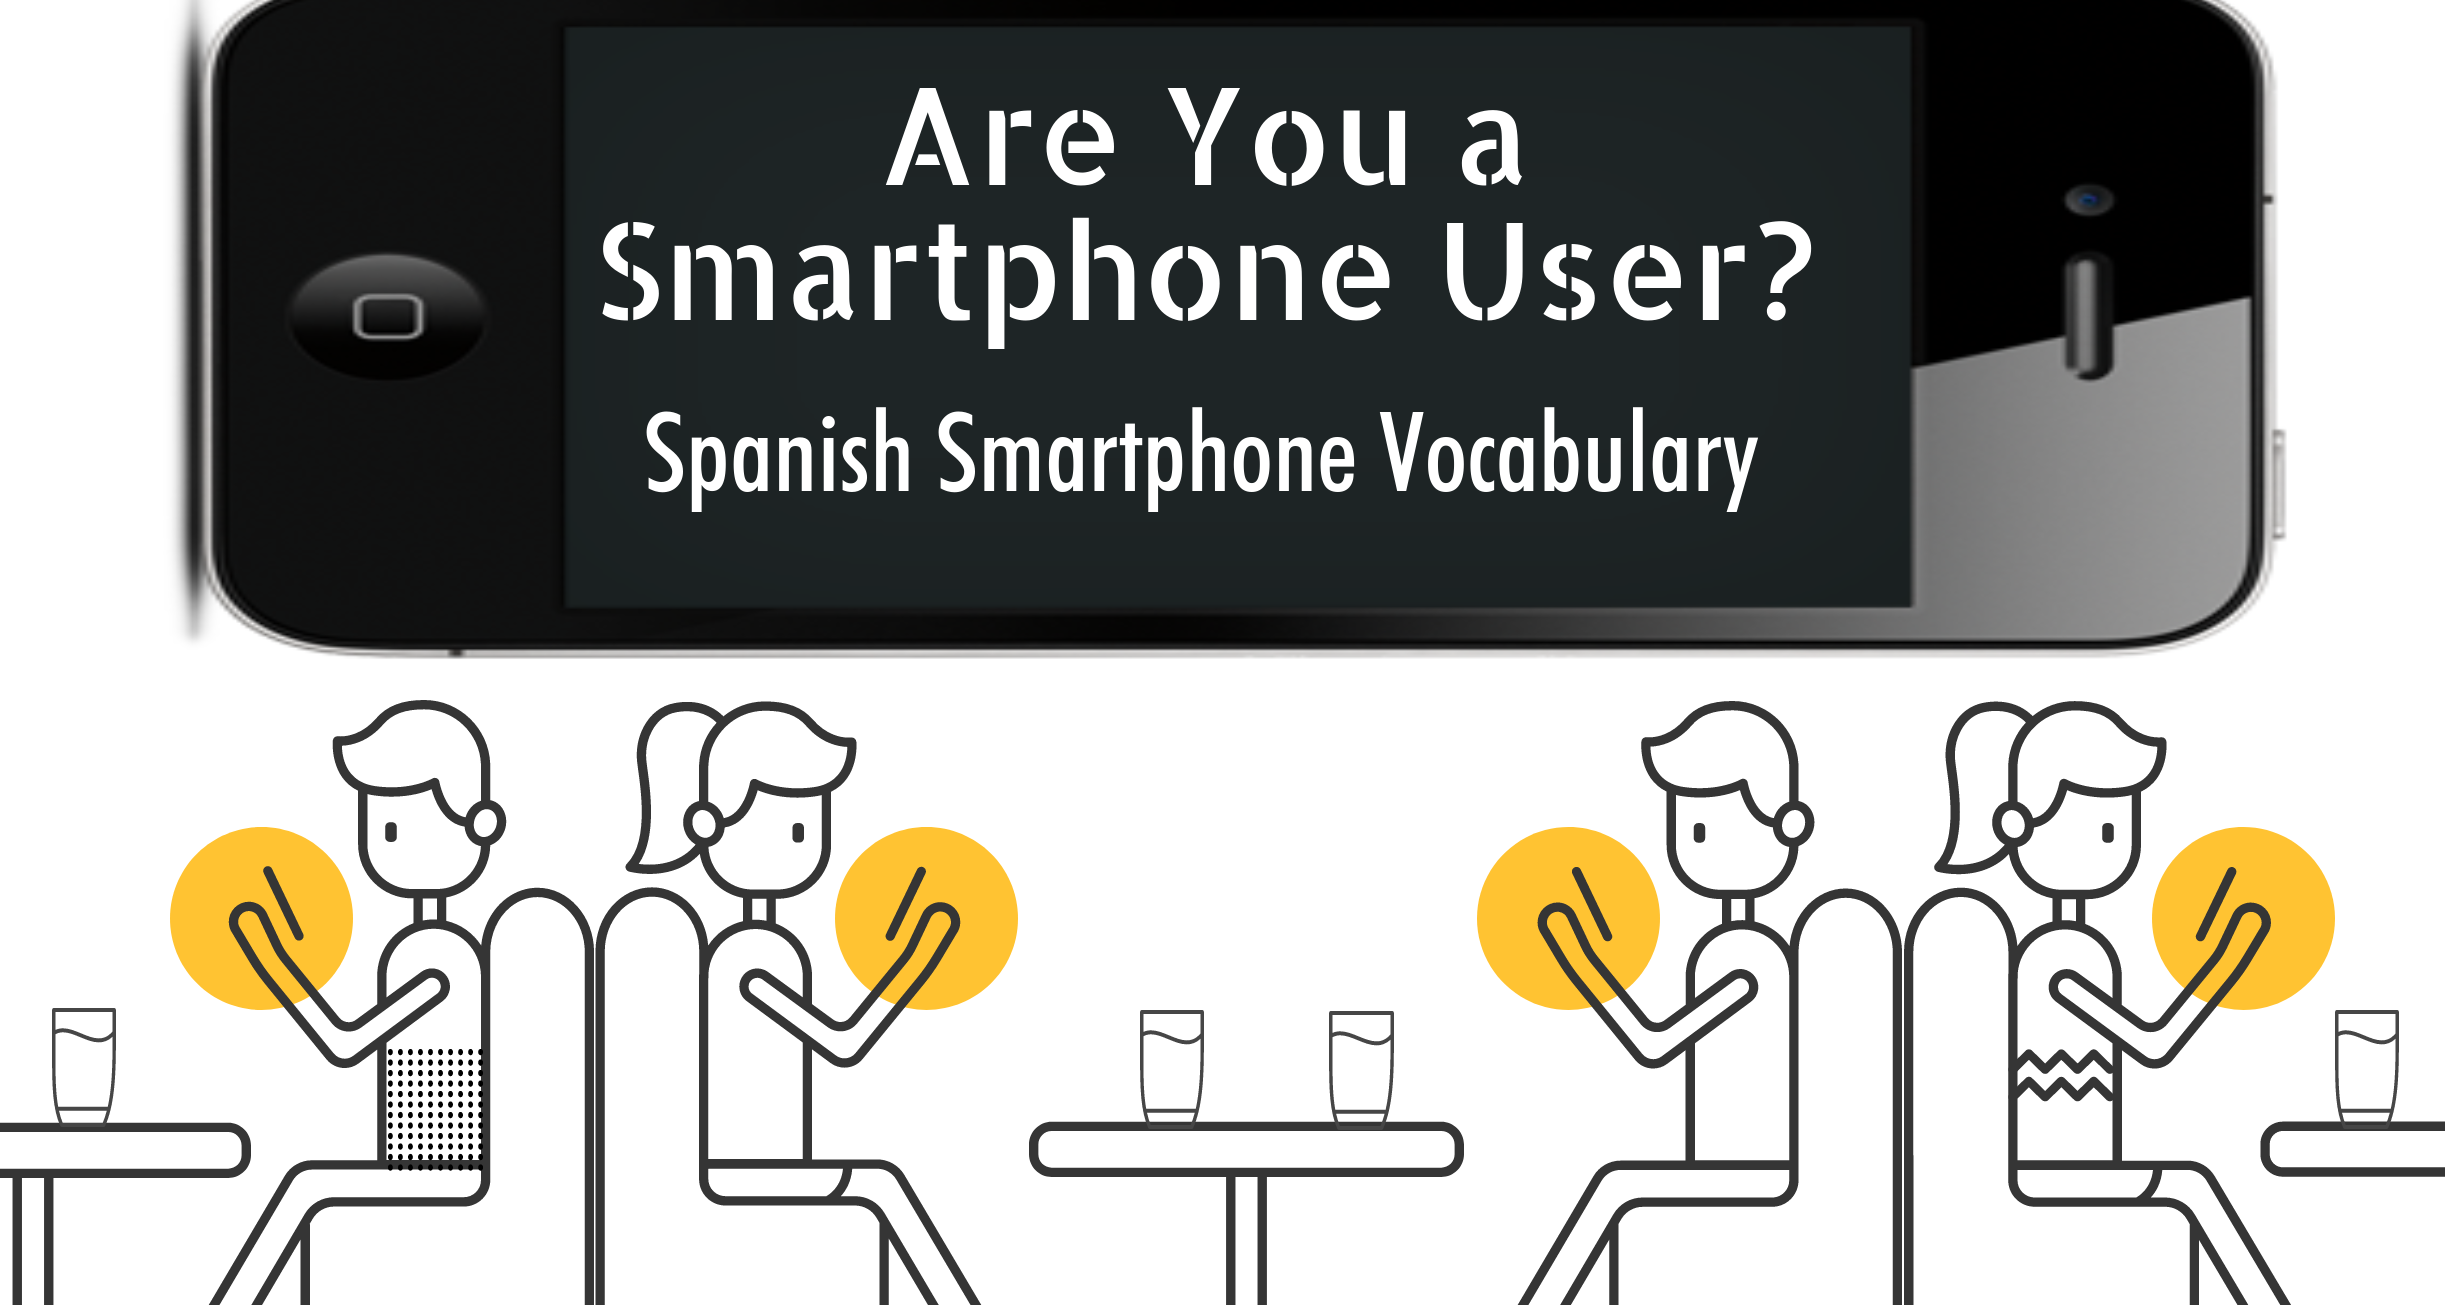 Are You A Smartphone User? Spanish Smartphone Vocabulary